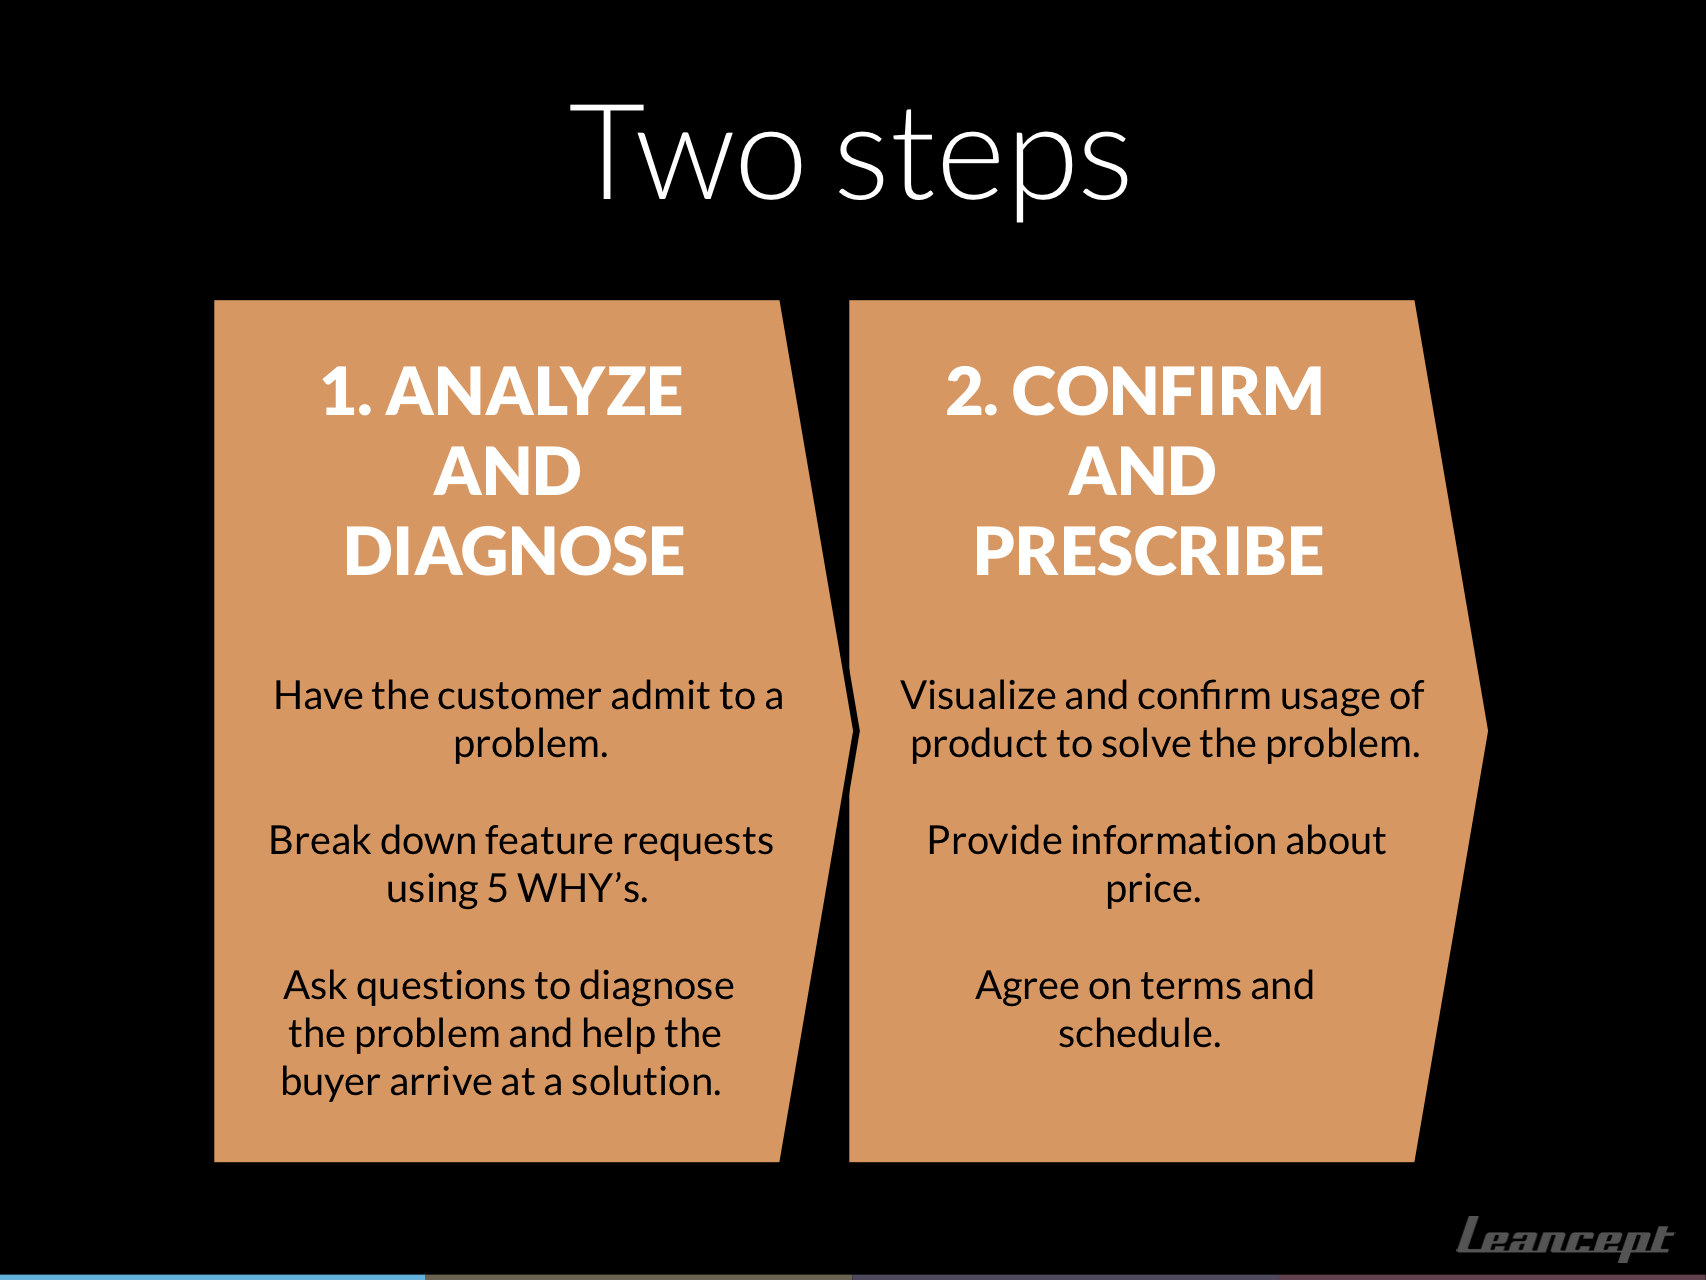 Two steps of sales conversations: 1. Analyze and Diagnose, 2. Confirm and Prescribe.